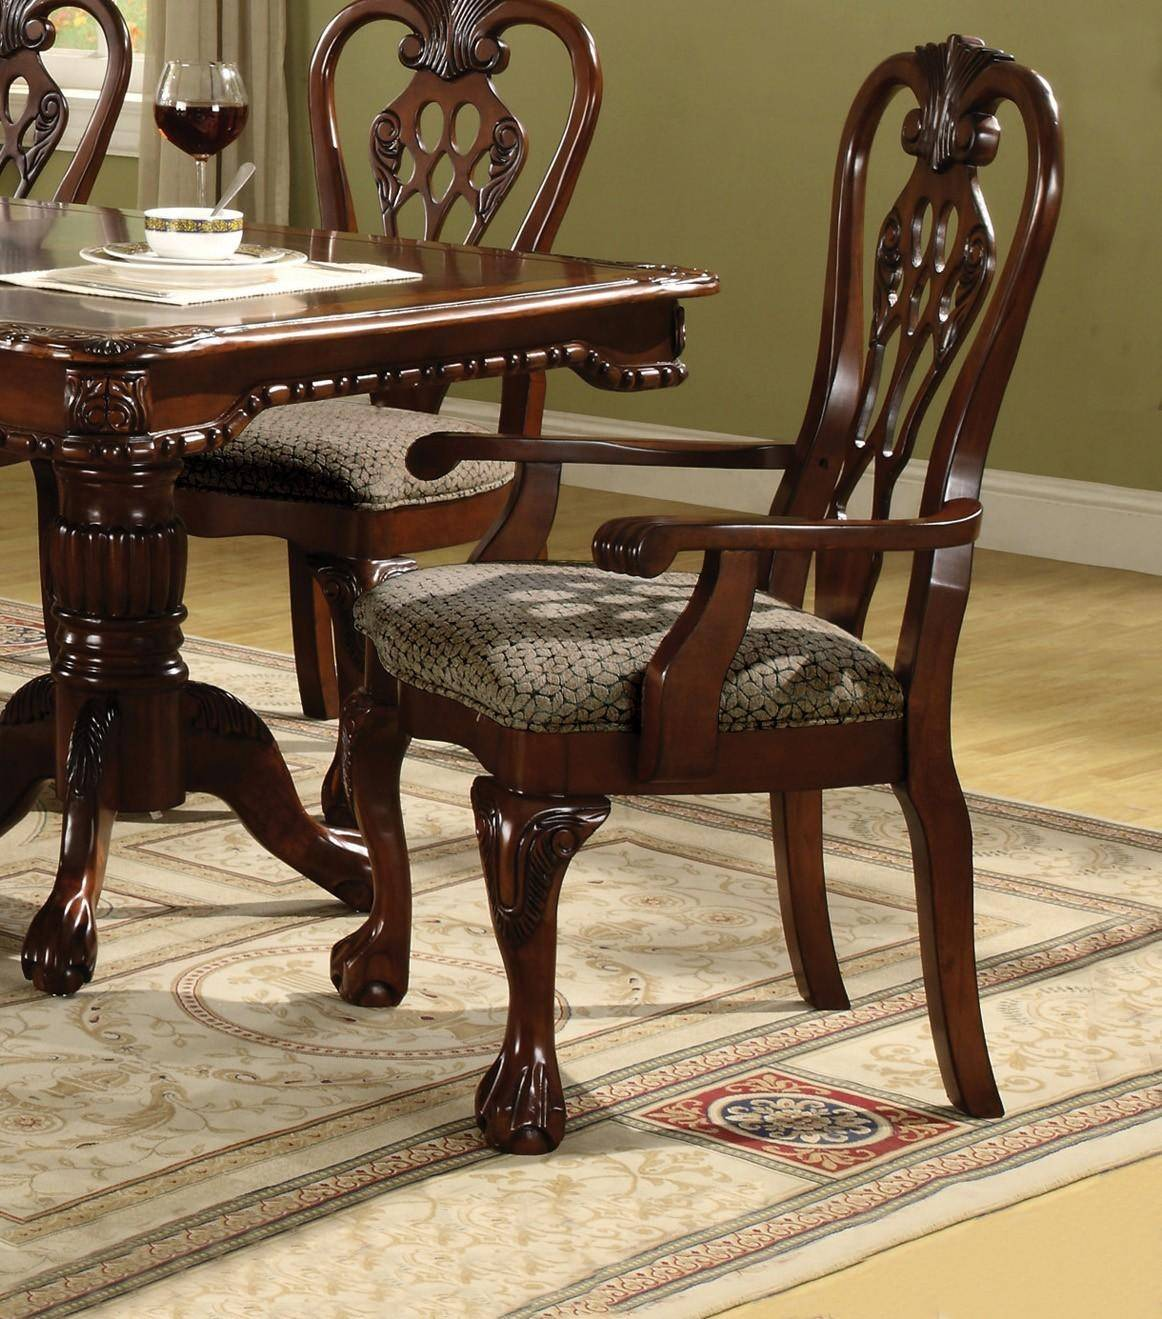 Formal Dining Room Sets For 6: Crown Mark 7 Pc Brunswick Formal Dining Room Set, Includes